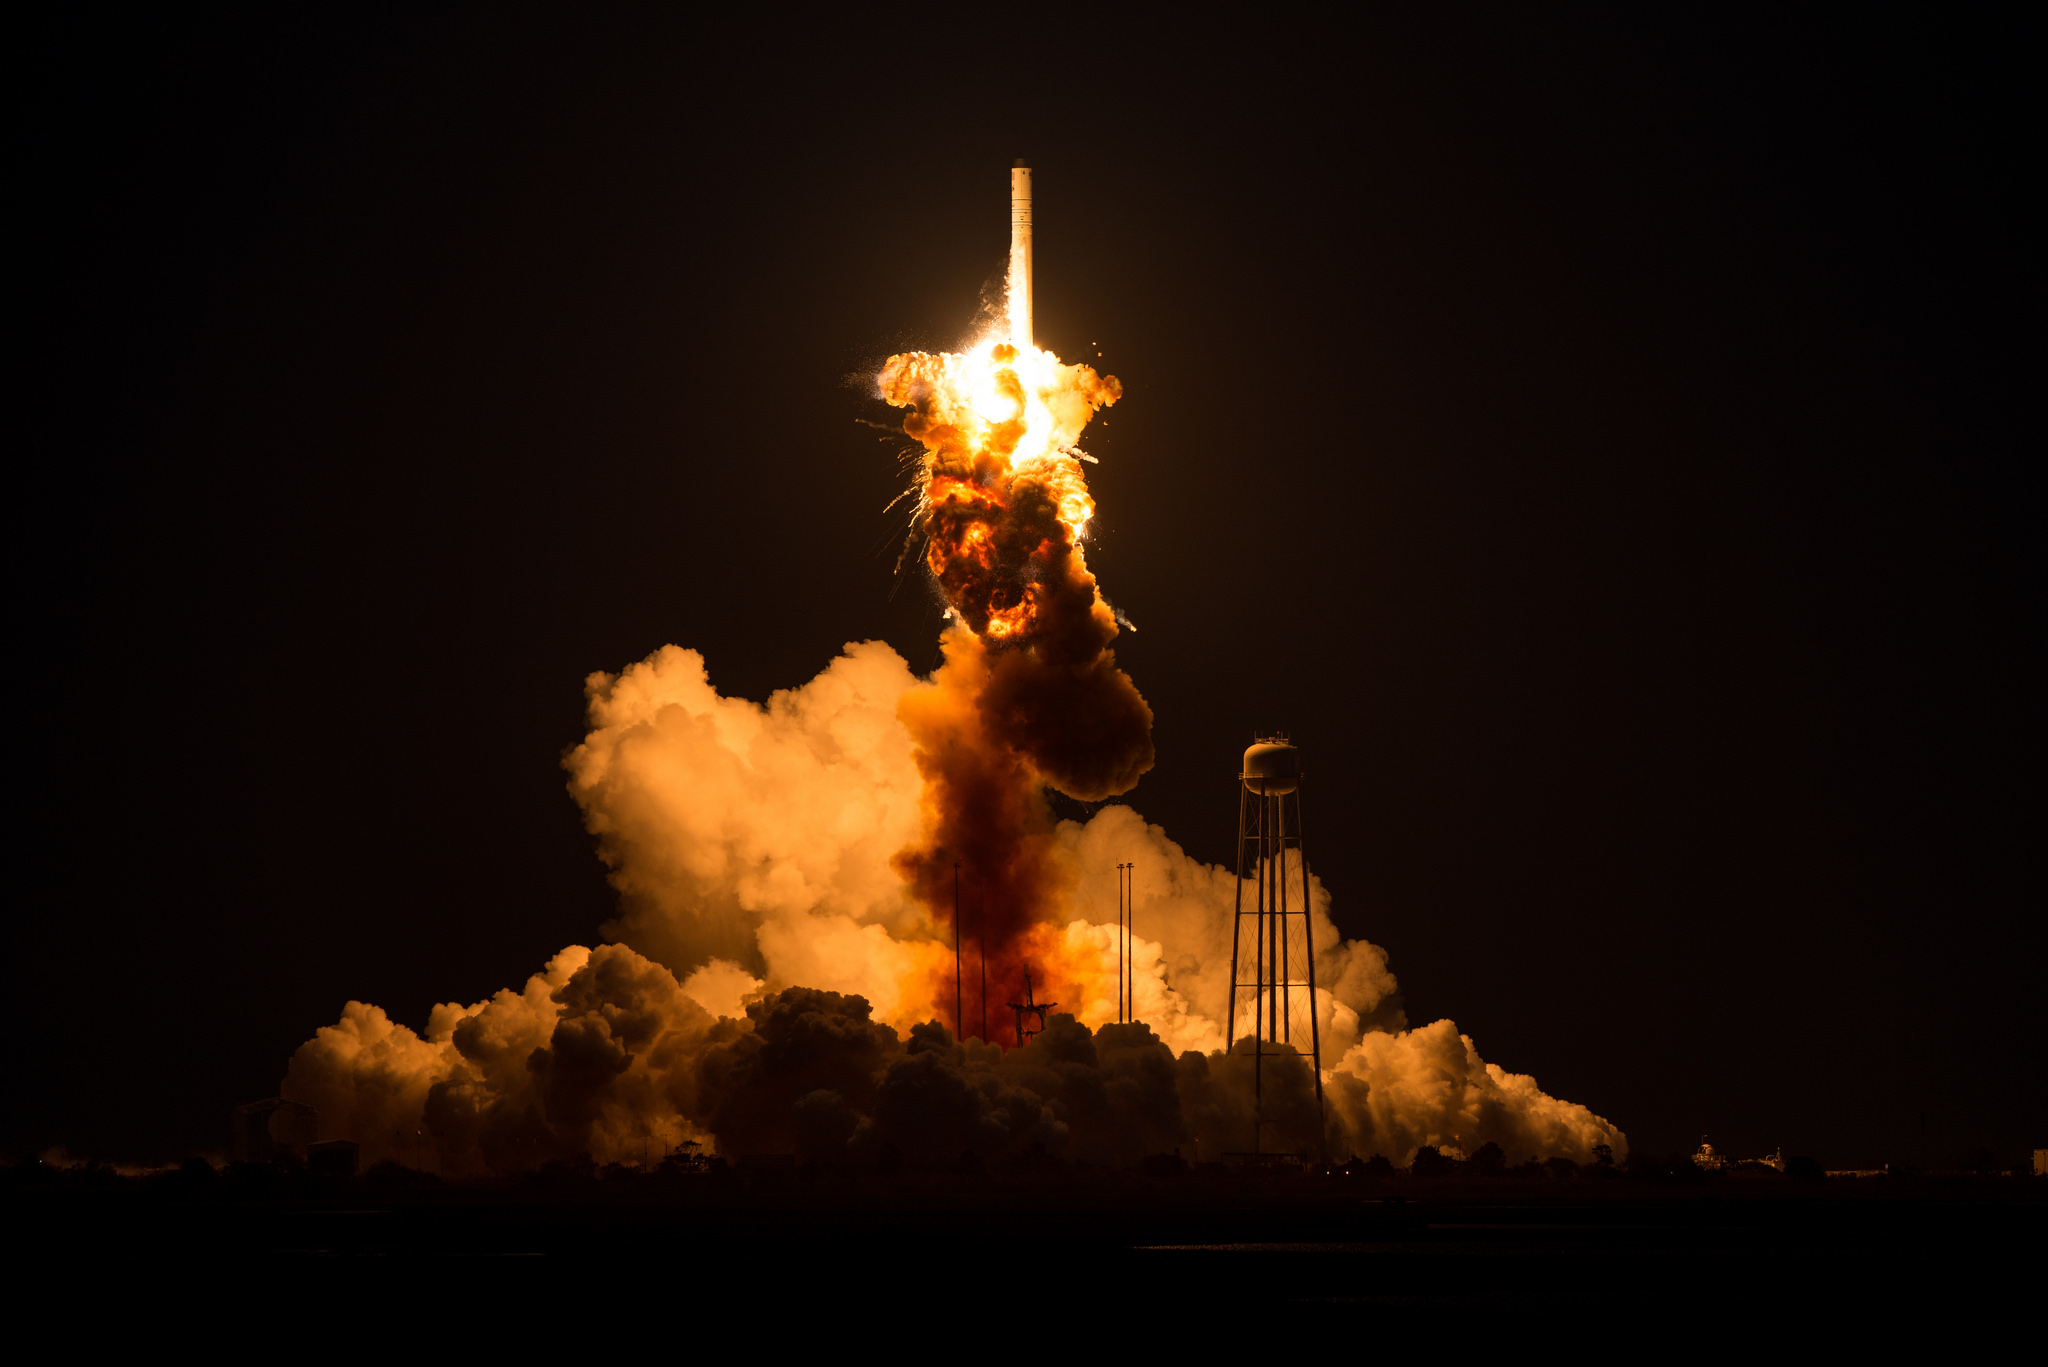 Orbital Sciences to Stop Using Suspect Russian Rocket Engine After Explosion